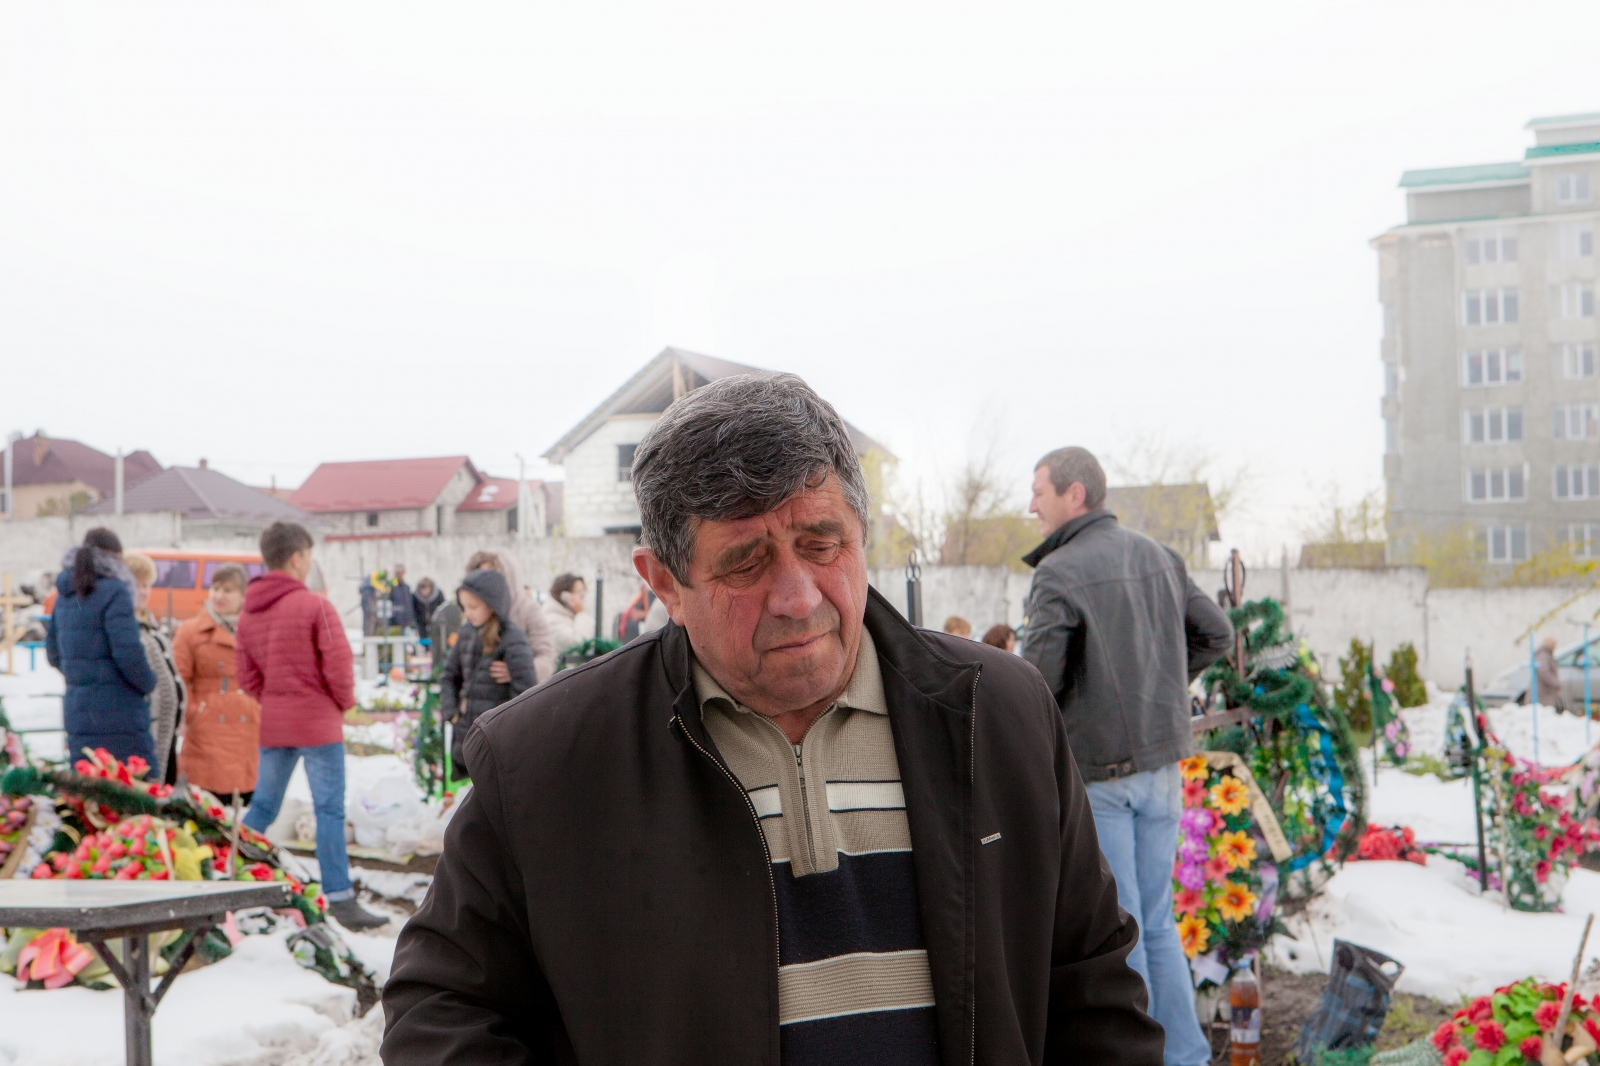 "In 2017, I spend Pastele Blajinilor with Ion. We slump through the snow and mud up to the cemetery. Just days earlier a freak late-April snowstorm hit Moldova. As Ion and I have talked about his past, Ion recalls how the deportations were a tragedy for his parents, but he was so young at the time that he still struggles to remember some parts. Ion is a quiet and warm, yet stoic man who speaks less of his deportation than Nina. The ways in which deportees remember their deportations differs significantly, some coming back to their experiences over and over again, and some thinking of them as a footnote in a young life. Today, Ion tends to focus more on the issues directly at hand, caring for his garden, making wine, and spending time with his family. Ion remembers, ""I was only a child [when we were deported], and the events didn't affect me much, don't feel attached to them. But my parents, they were the ones who pulled the laboring oar… You know, we couldn't talk [about the deportations] with our parents, we didn't want to ask them anything and they didn't want to tell. I guess they were very afraid when they were taken away and they must have suffered a great deal. They were forced to keep their mouths shut lest someone in power should find something out about them. My father had a saying, 'Don't play with the state, because you're playing with fire.'"""